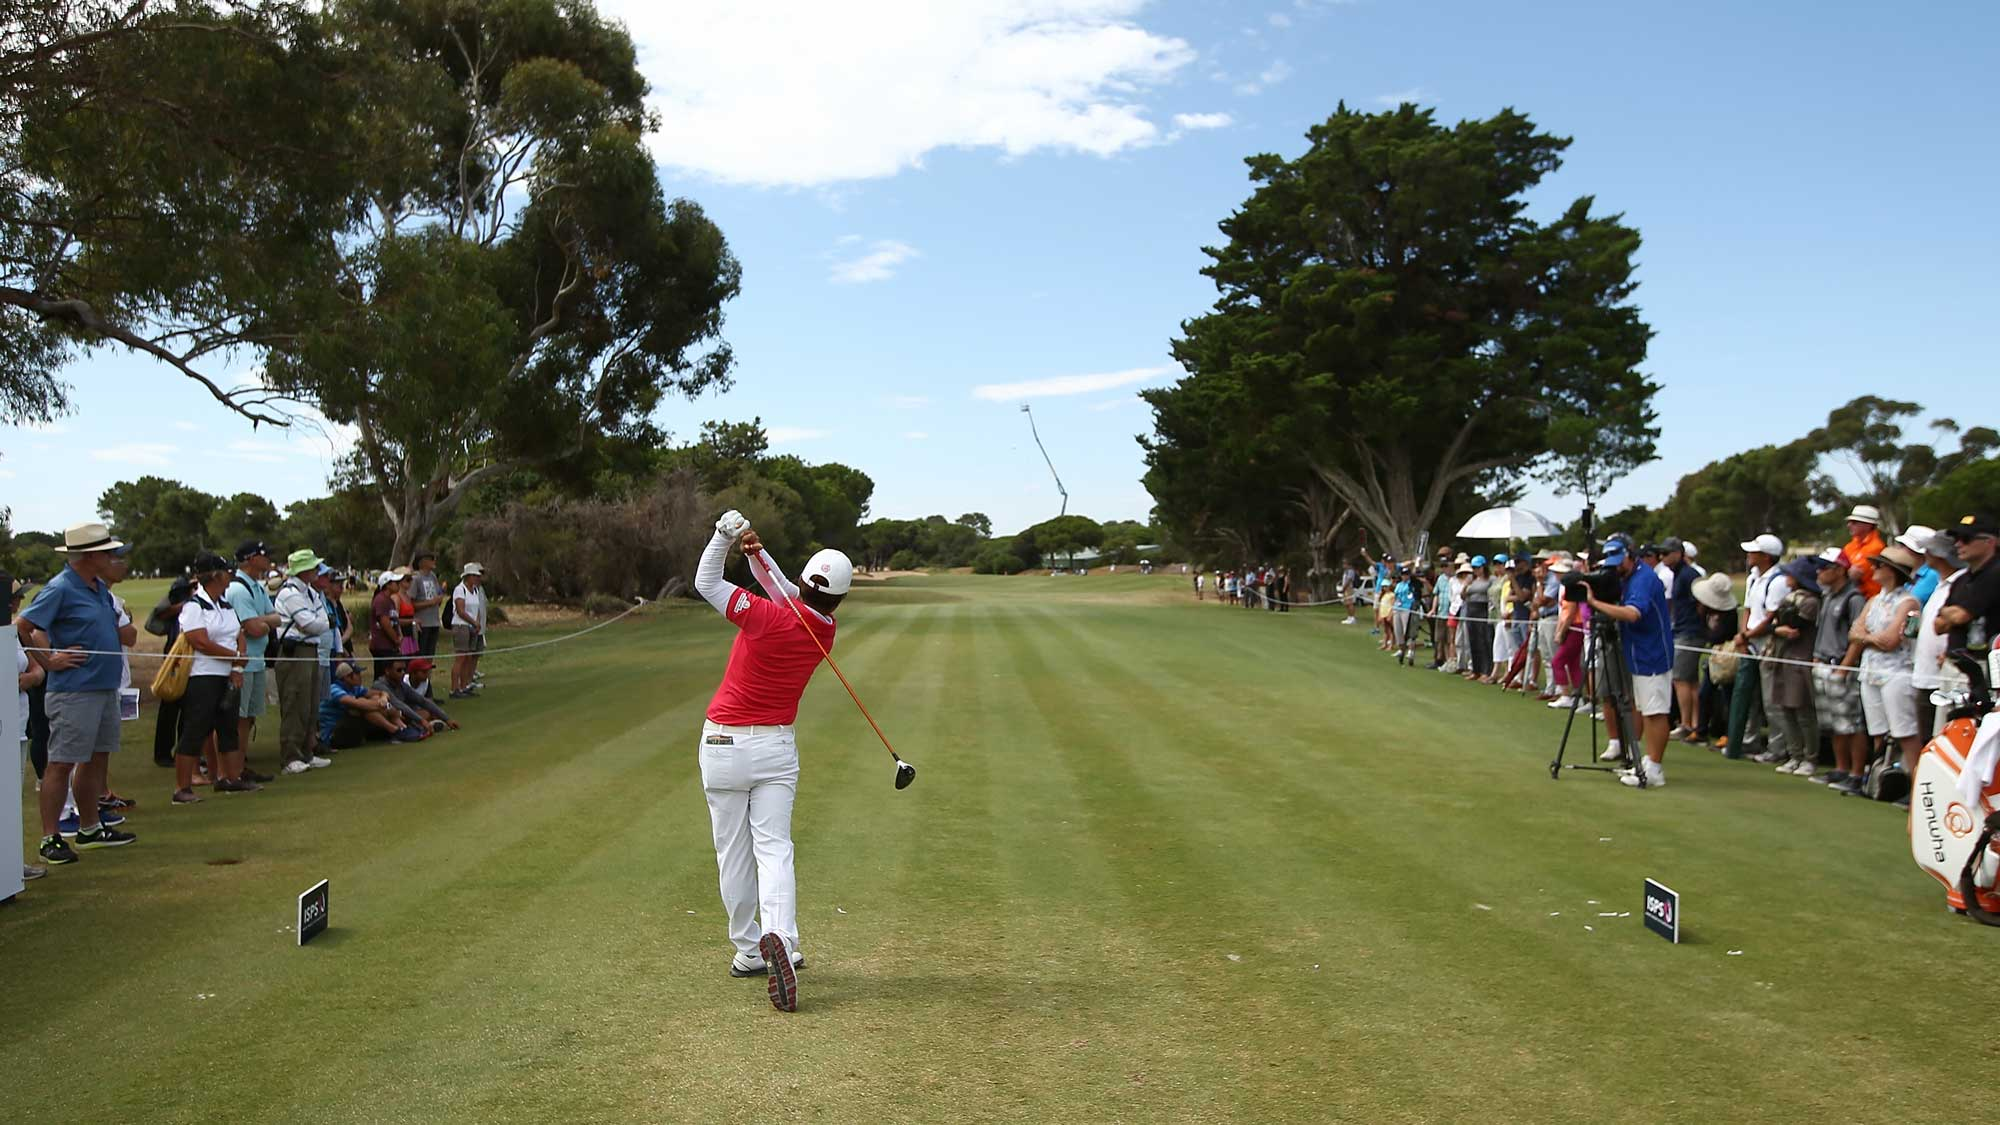 Haru Nomura of Japan tees off during day four of the ISPS Handa Women's Australian Open